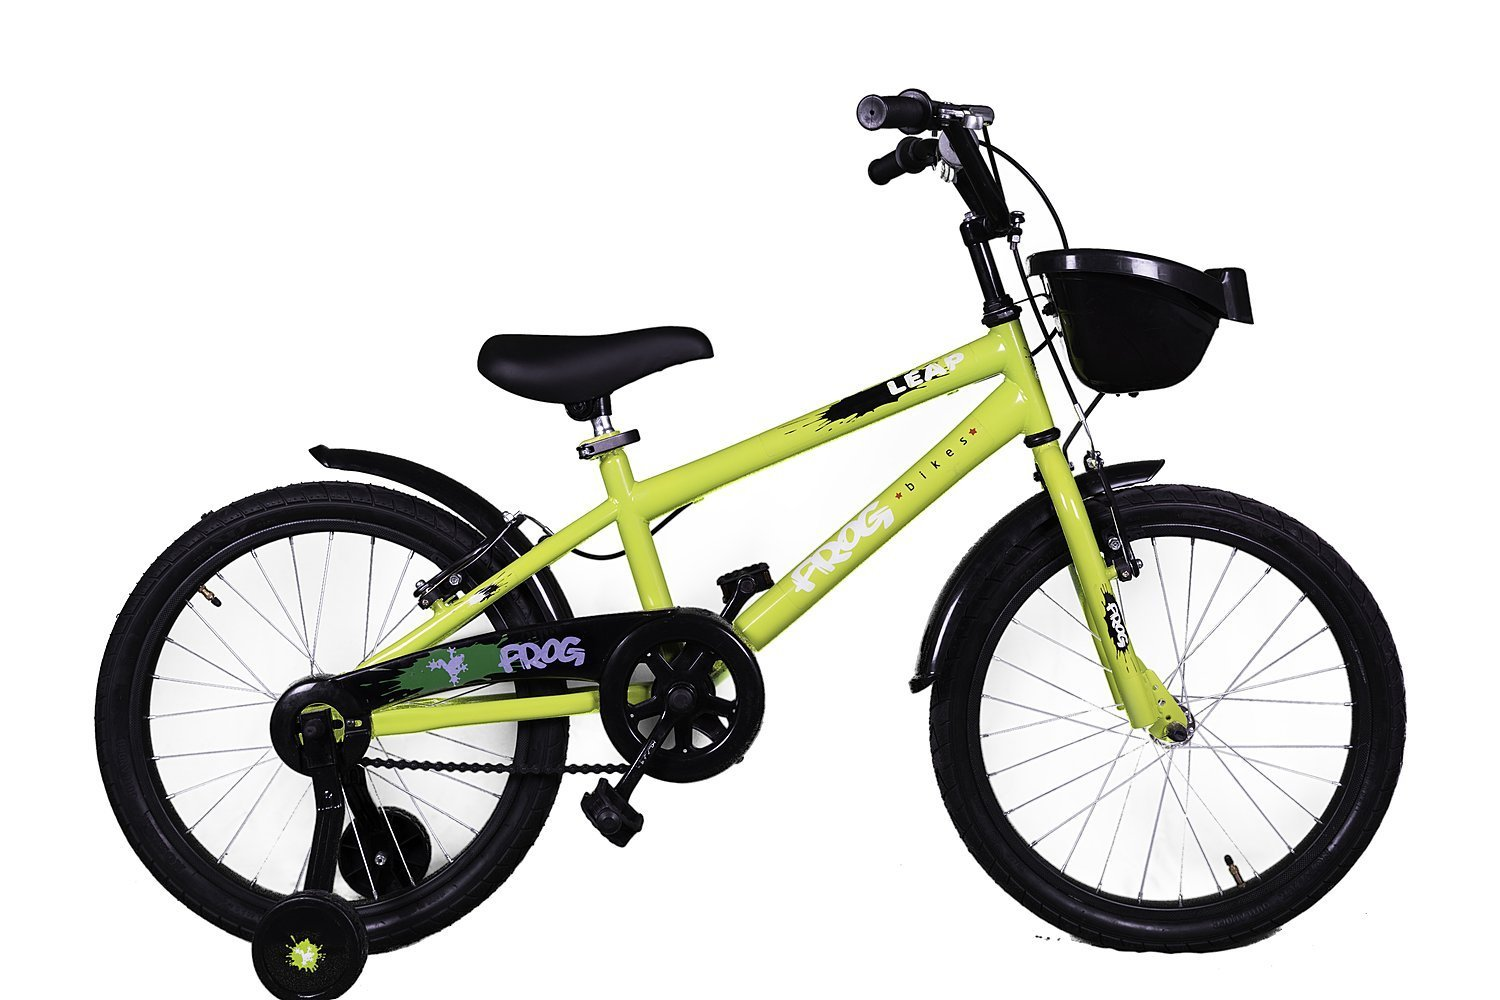 Steal DEAL - Frog Leap Steel Kids Cycle @ 45% off